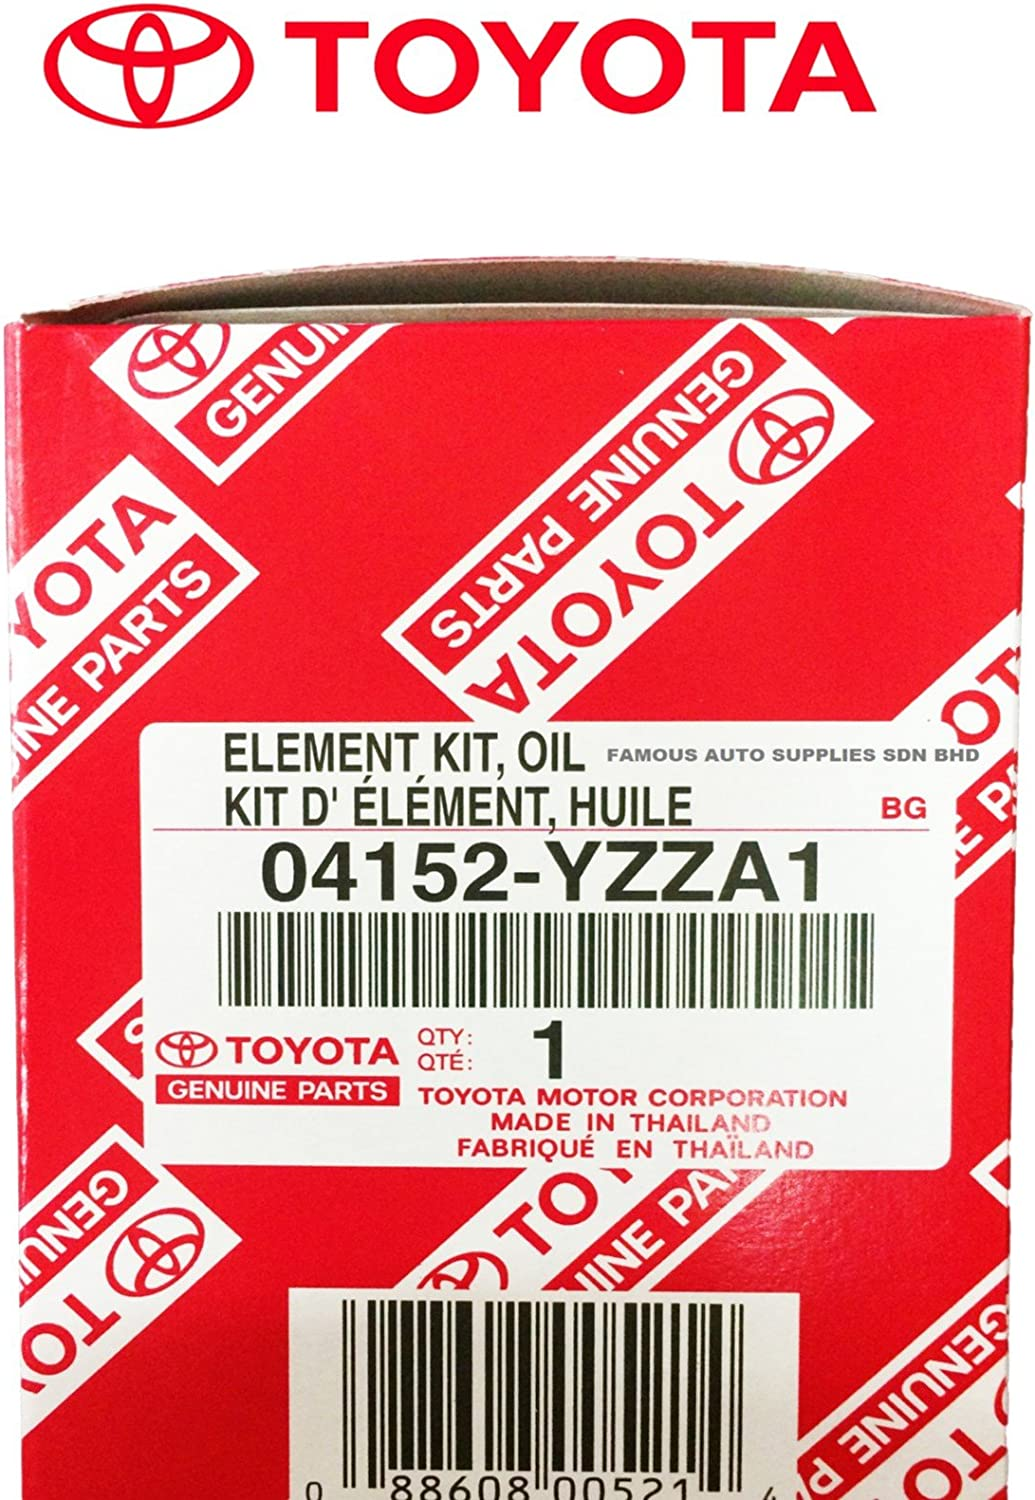 Perfect for Camry Sienna and More RAV4 Fits 64mm Cartridge Style Oil Filter Housings Genuine Oil Filter with Wrench ASPG ZTOOL Premium for 2.5L 3.5L to 5.7L Engines Highlander